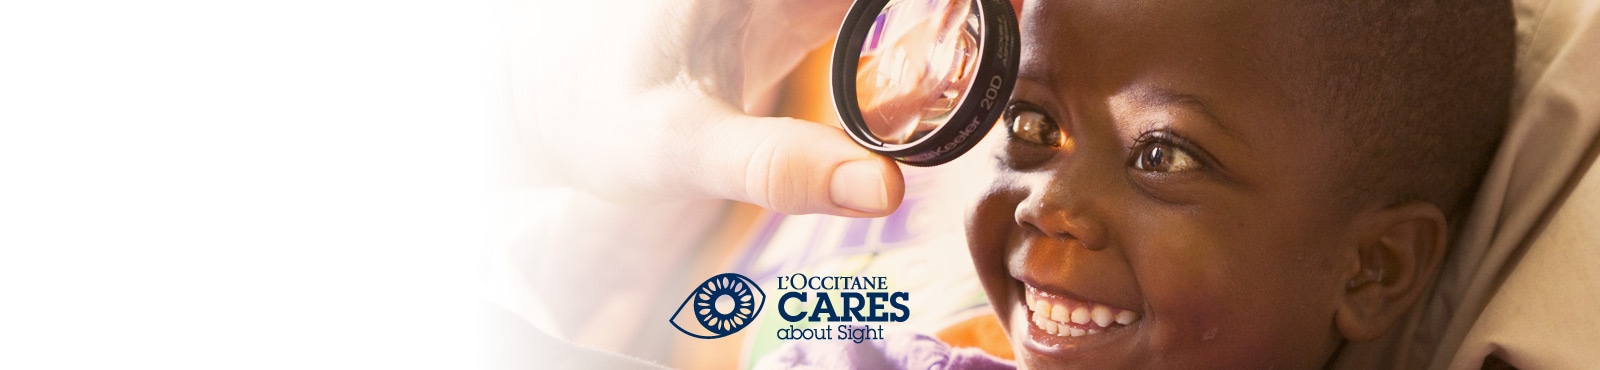 Help fight avoidable blindness